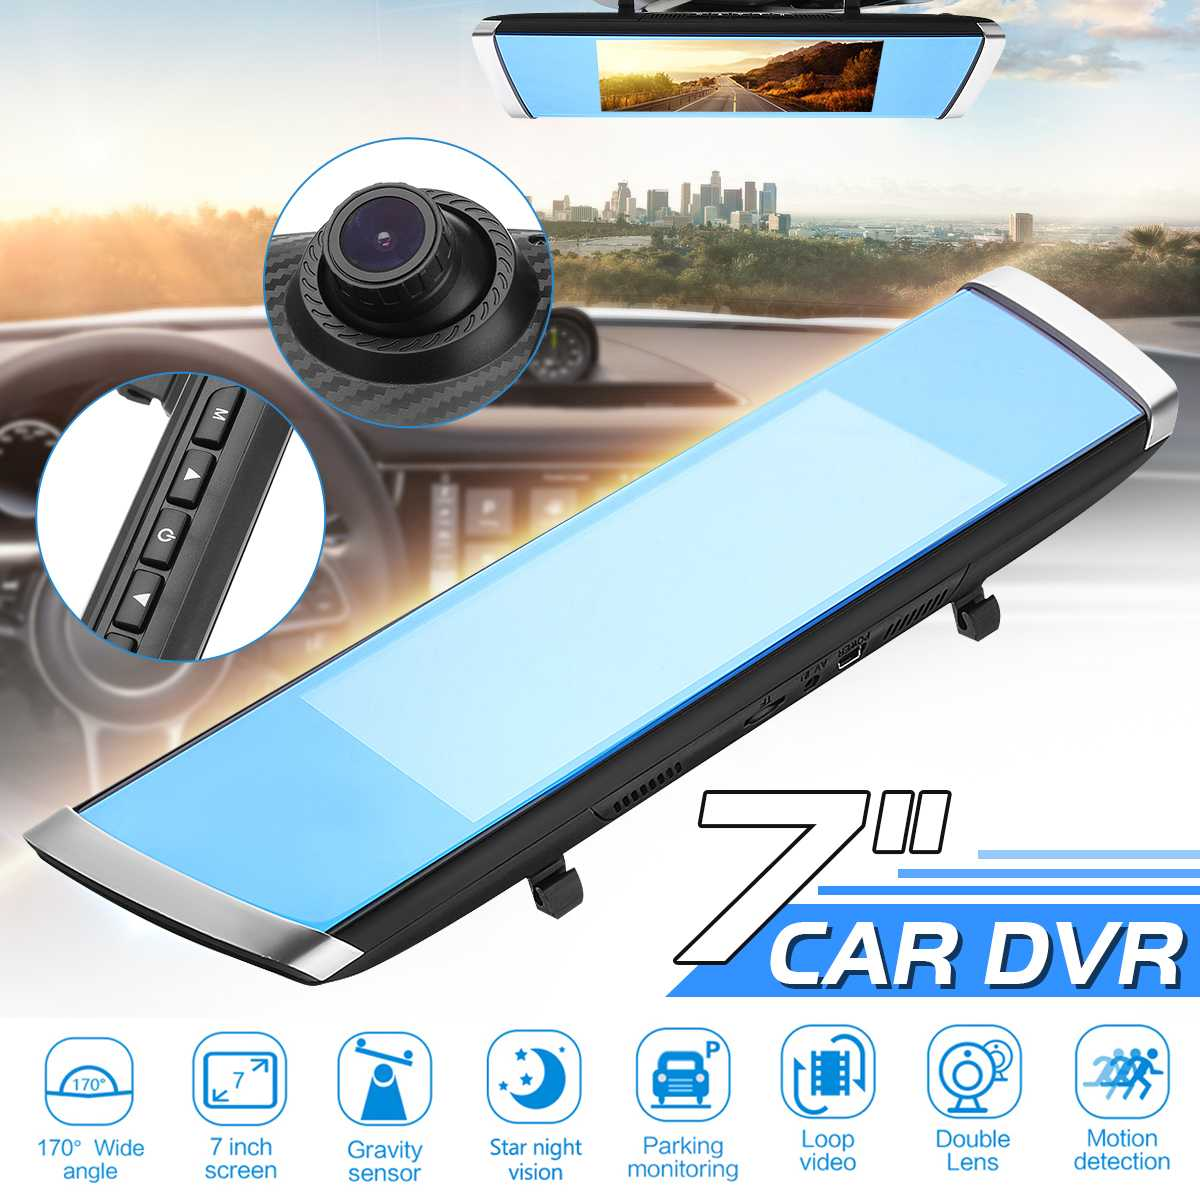 7 Inch Screen Full HD 1080P 170 Degree Angle Car DVR Camera Blue Rear View Mirror Video Recorder Dual Lens Dash Cam Detector7 Inch Screen Full HD 1080P 170 Degree Angle Car DVR Camera Blue Rear View Mirror Video Recorder Dual Lens Dash Cam Detector